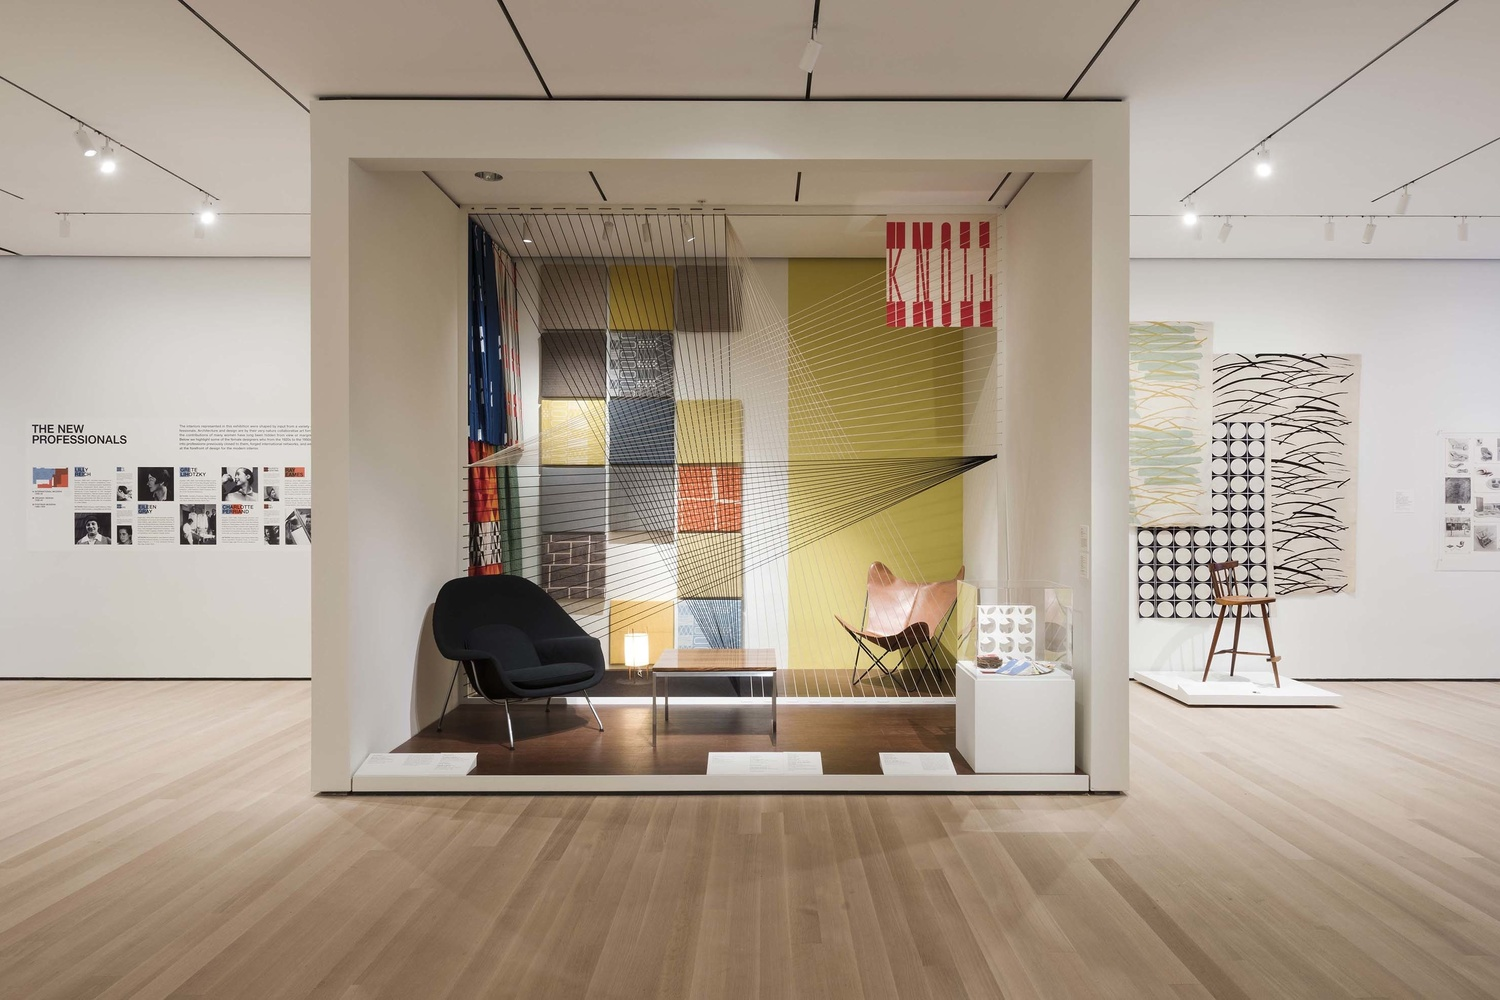 Installation view of How Should We Live? Propositions for the Modern Interior, The Museum of Modern Art, New York, October 1, 2016–April 23, 2017. © 2016 The Museum of Modern Art. Photo: Martin Seck